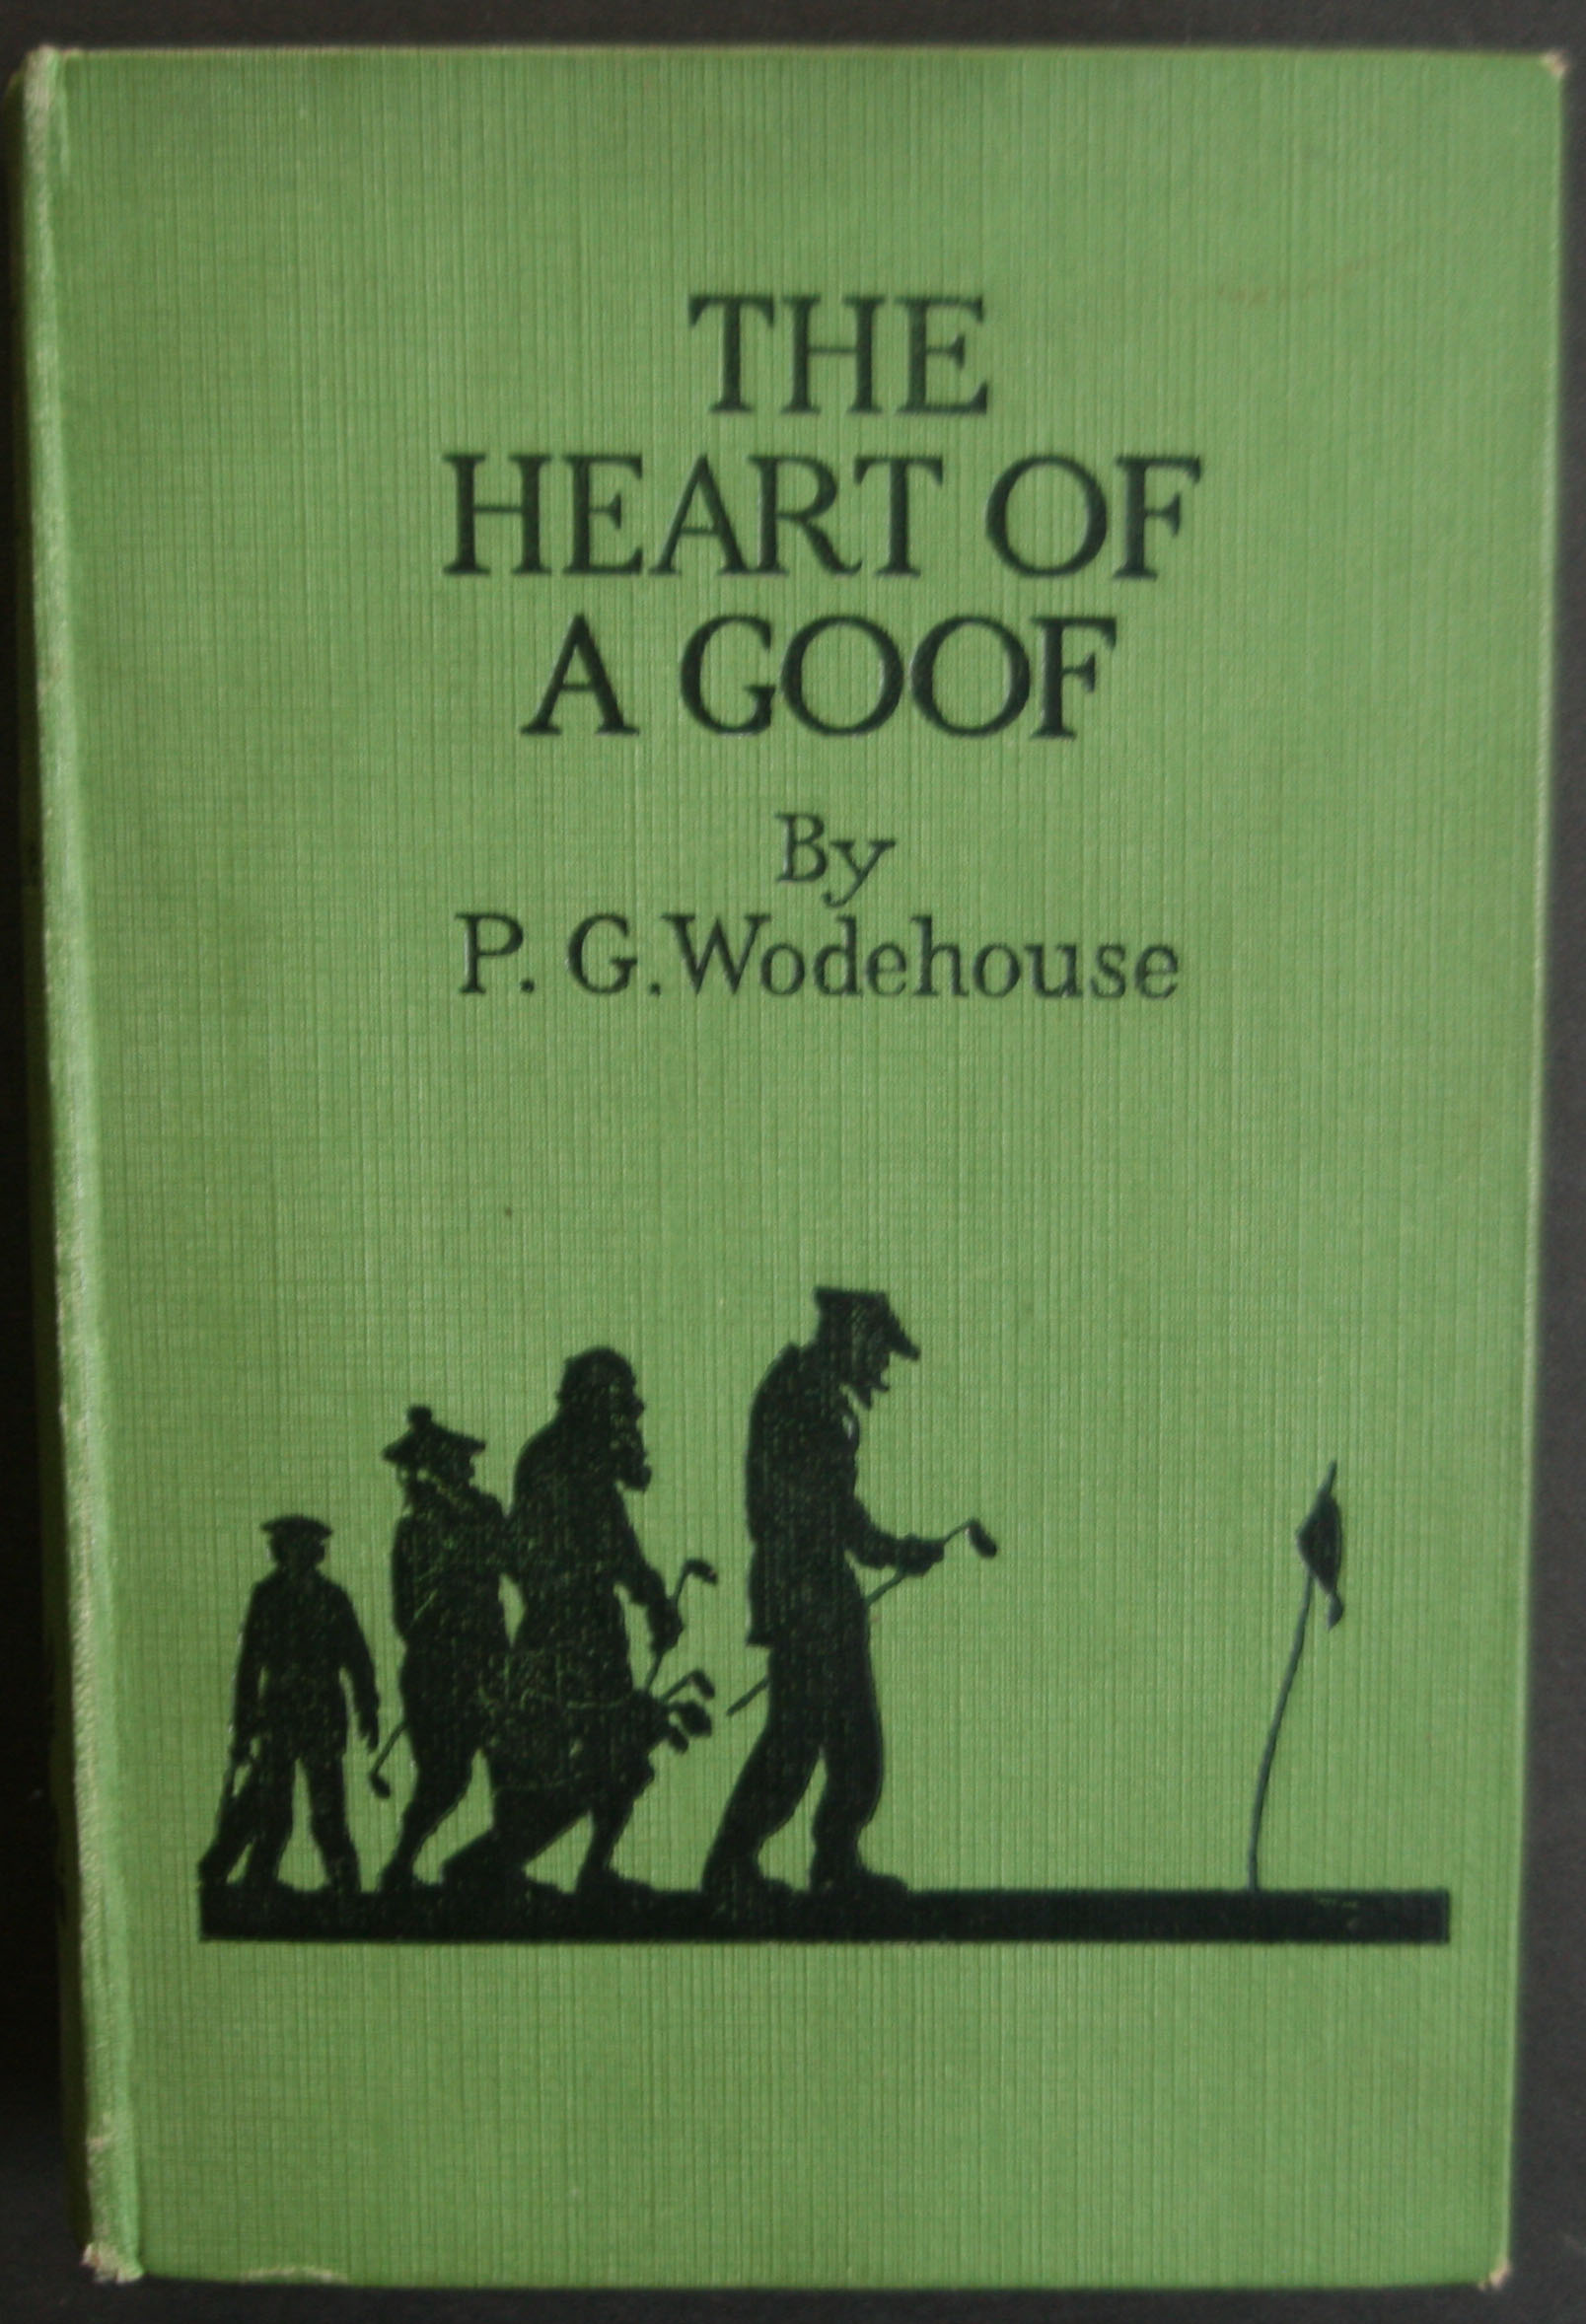 p g wodehouse the heart of a goof